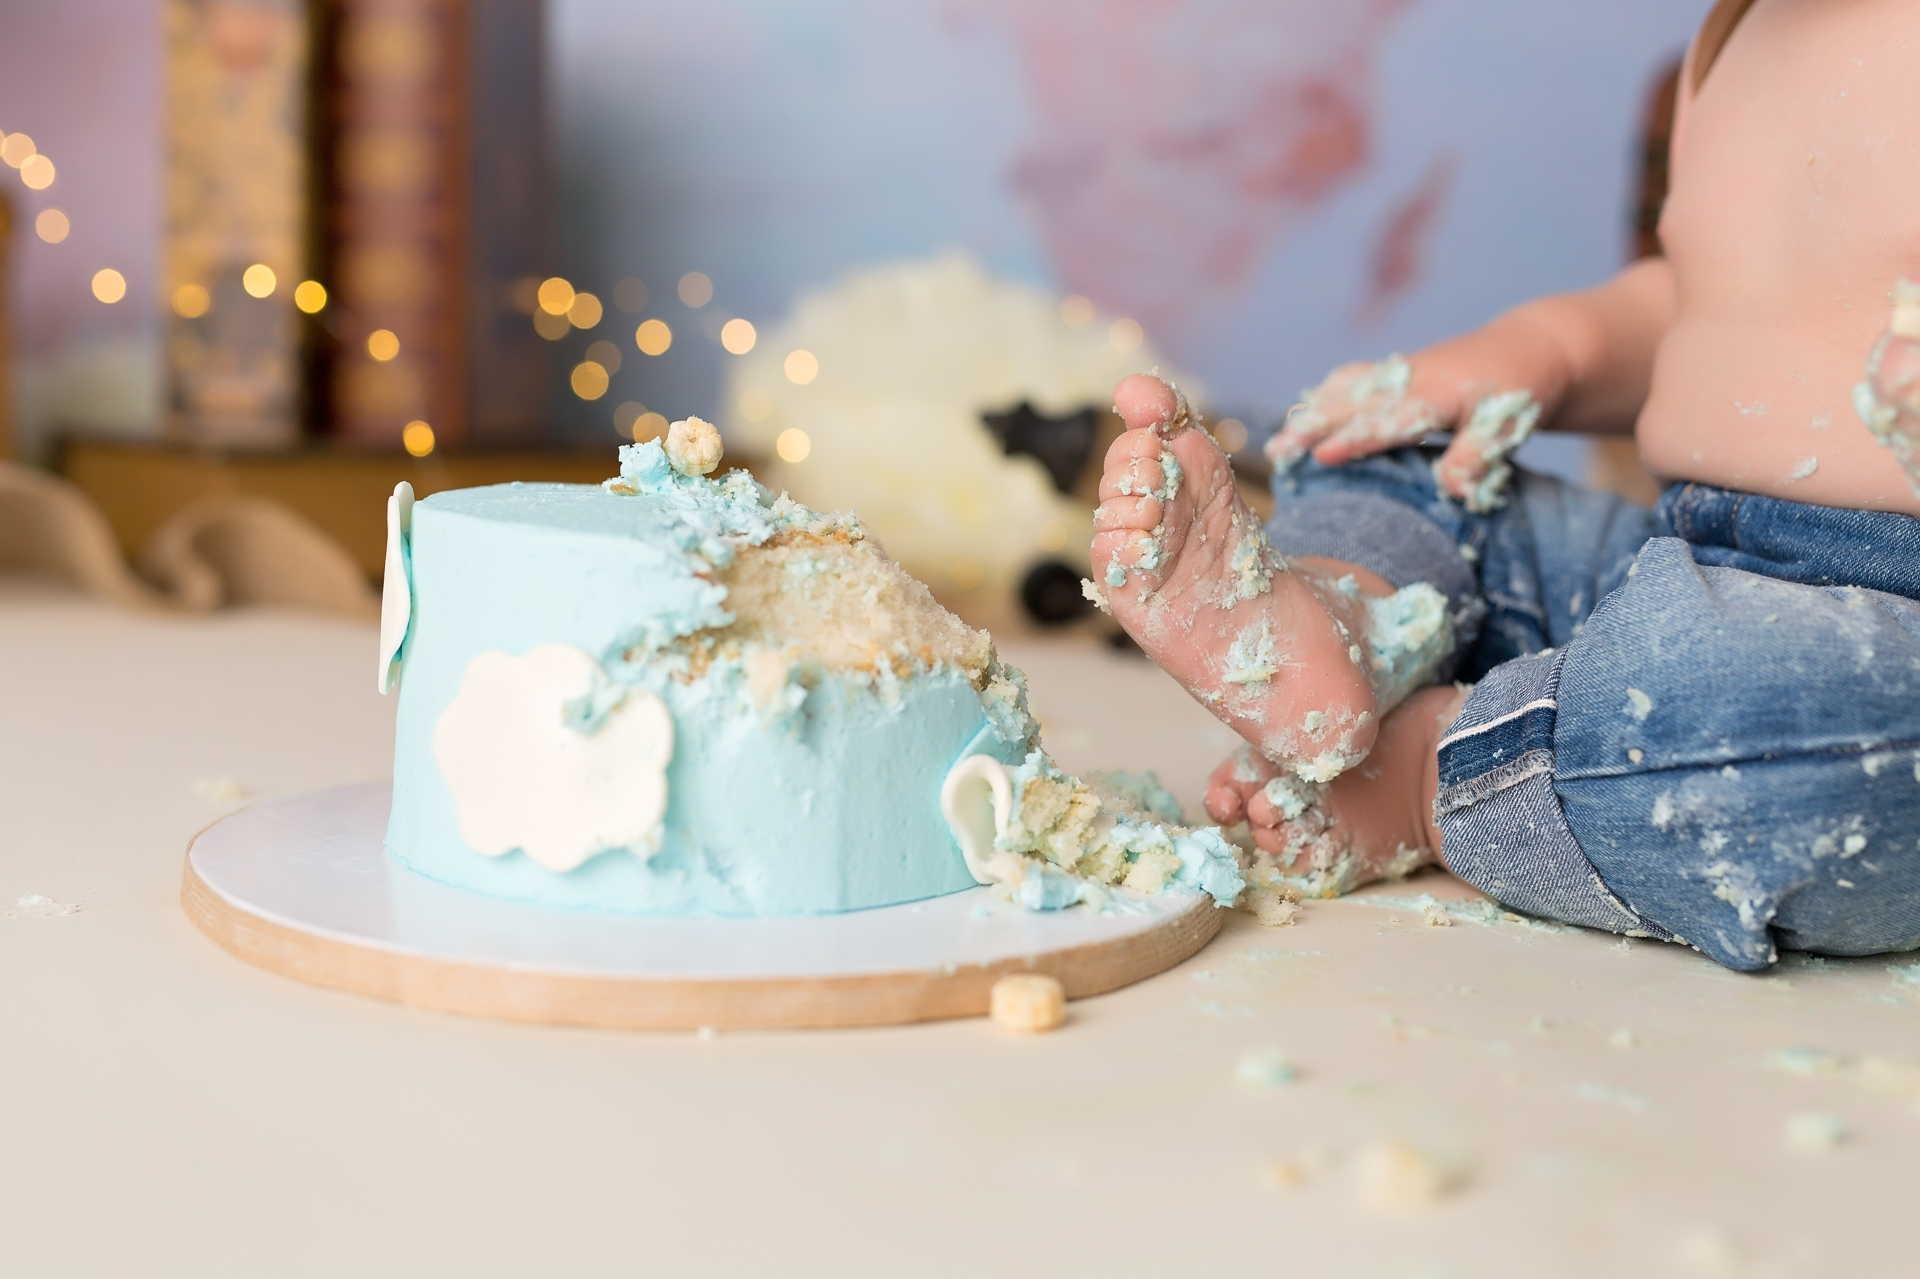 foot in the cake